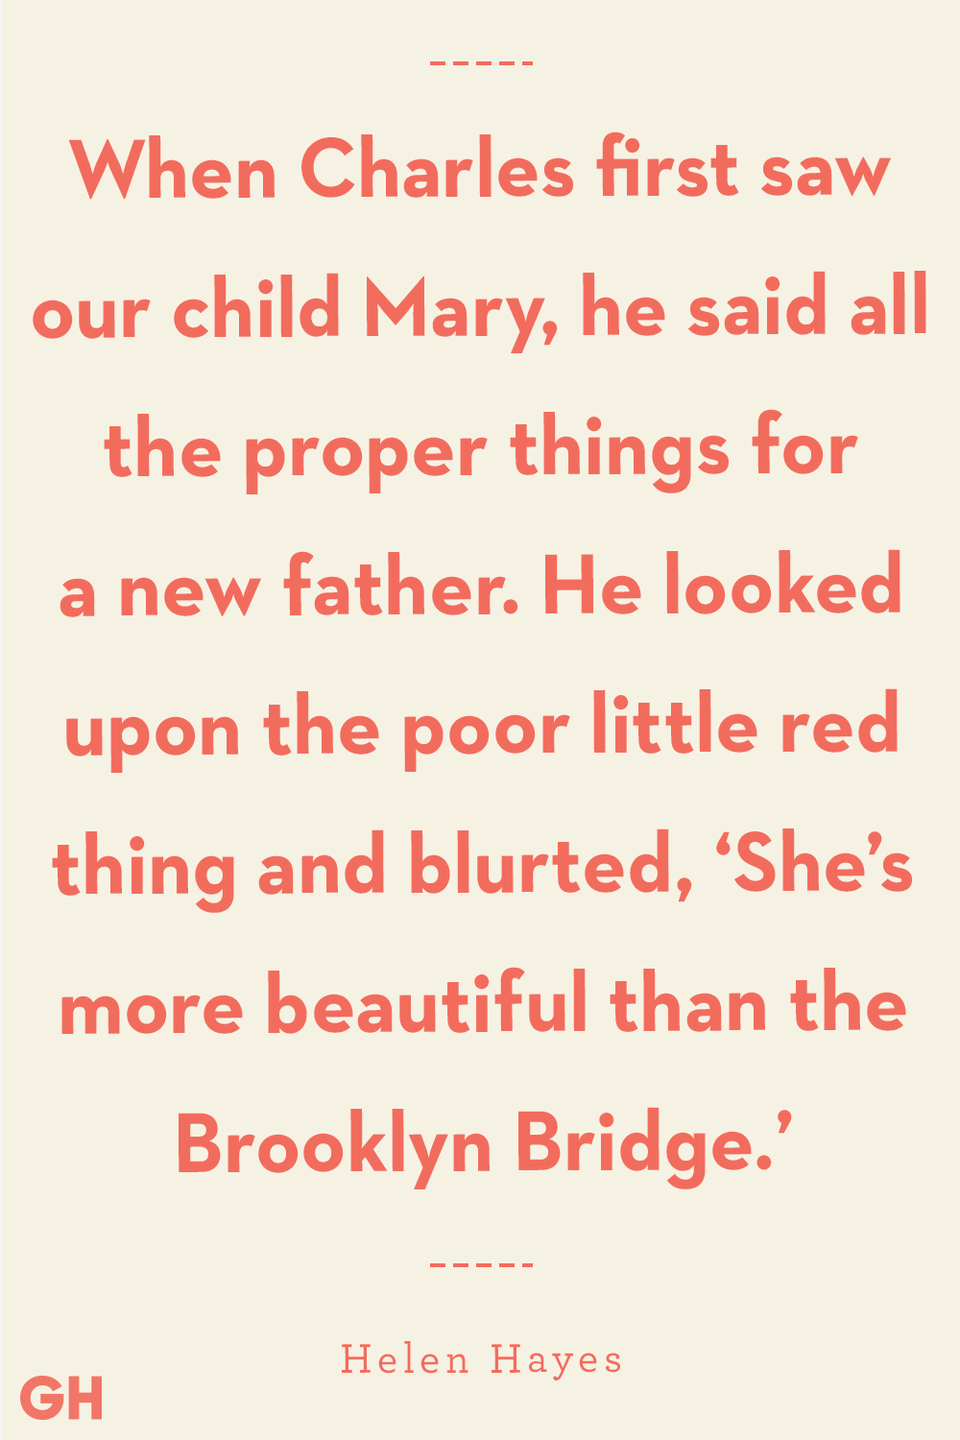 <p>When Charles first saw our child Mary, he said all the proper things for a new father. He looked upon the poor little red thing and blurted, 'She's more beautiful than the Brooklyn Bridge.'</p>